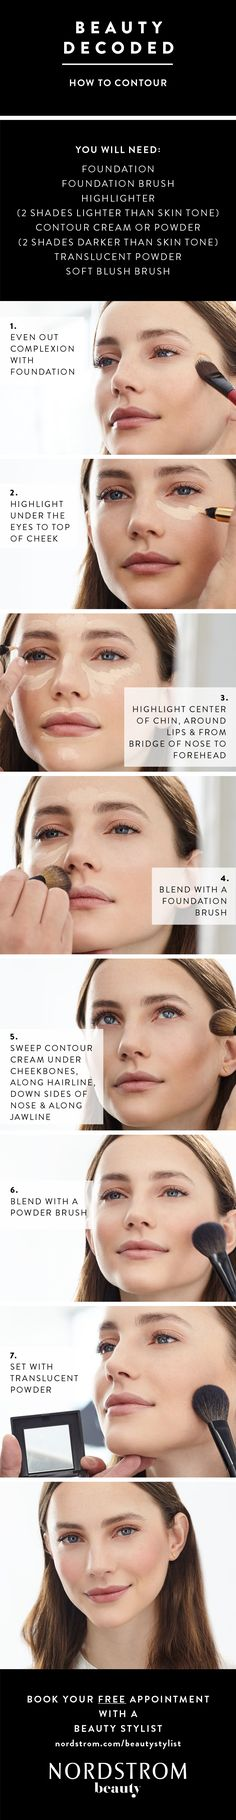 How-to do beauty contouring in 7 easy steps. All you need is foundation, a foundation brush, highlighter brush, highlighter (2 shades lighter than skin tone), contour cream or powder (2 shades darker than your skin tone), translucent powder and a soft blush brush. Define cheekbones in minutes!